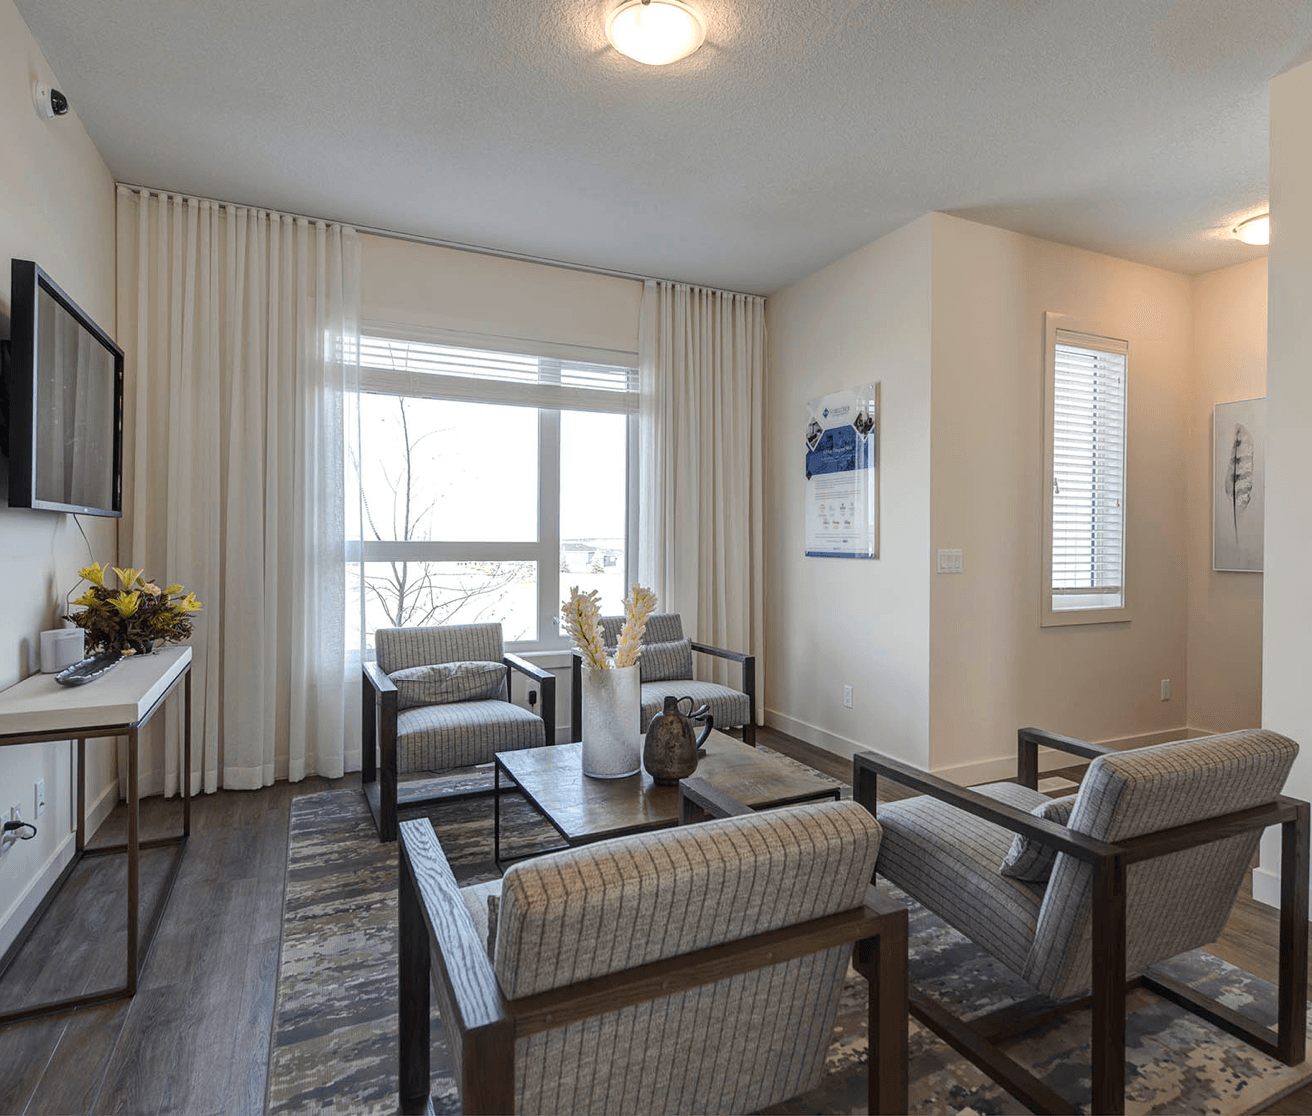 Featured Move-In Ready Home The Rosewood18 Livingroom Offer